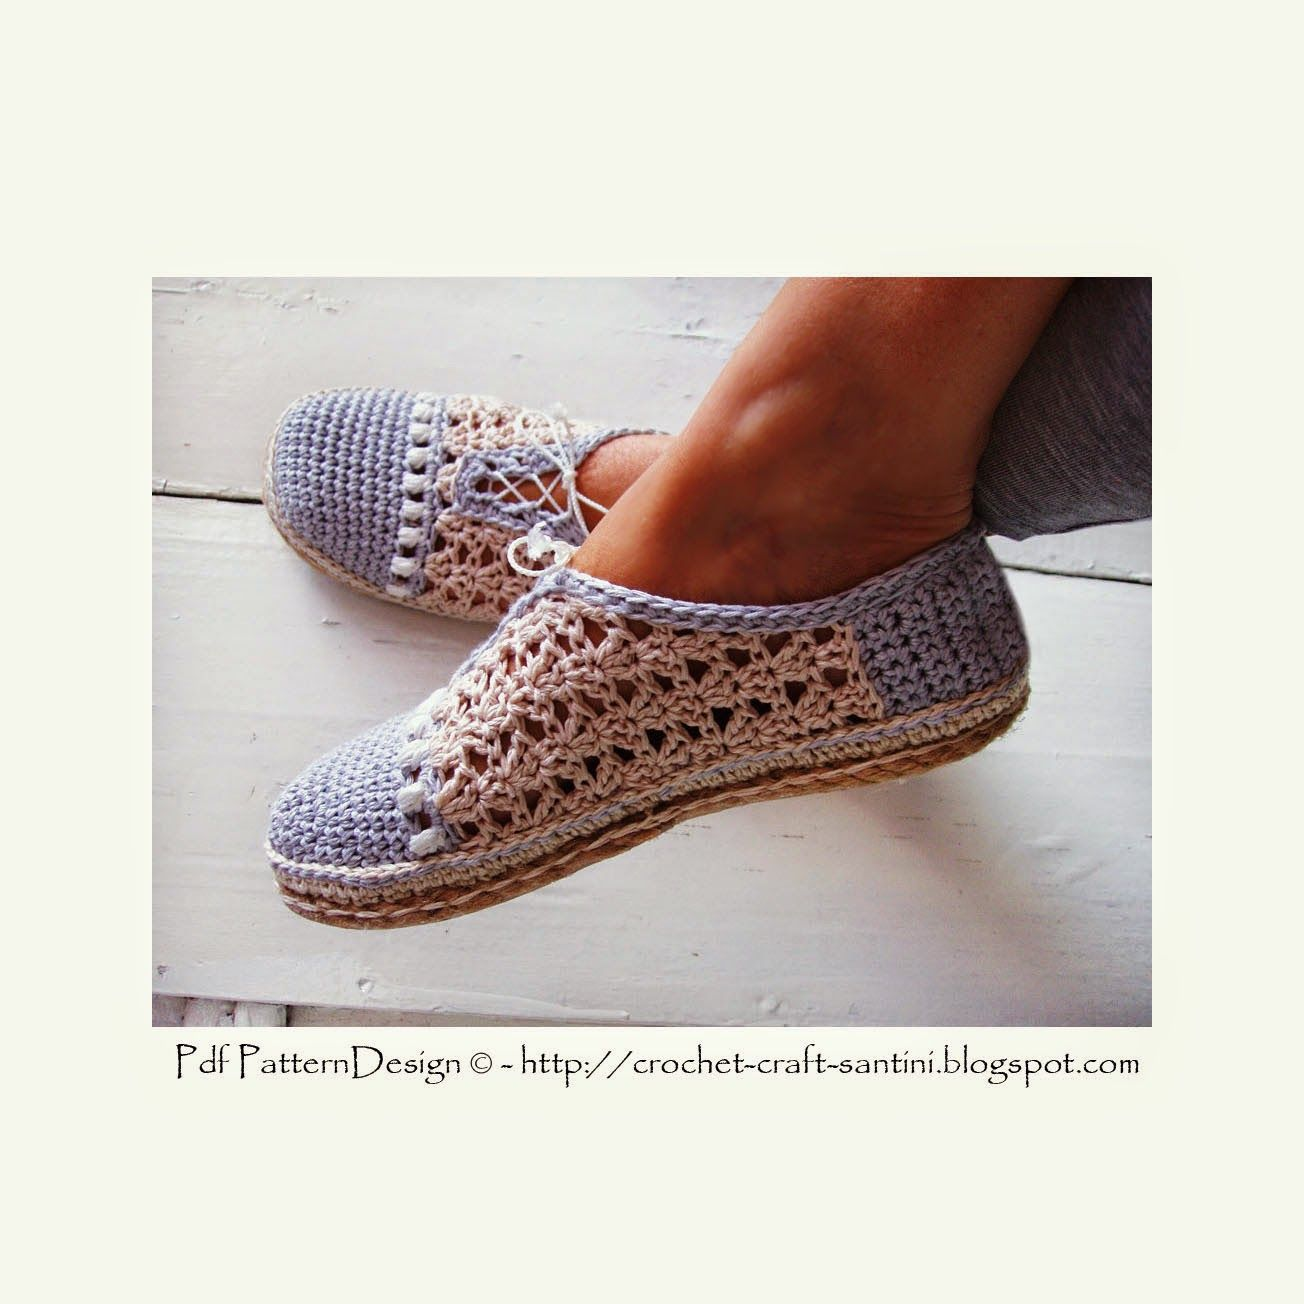 Crochet & Craft: CROCHET SLIPPER/SHOES WITH MATCHING SHOPPING BAG ...